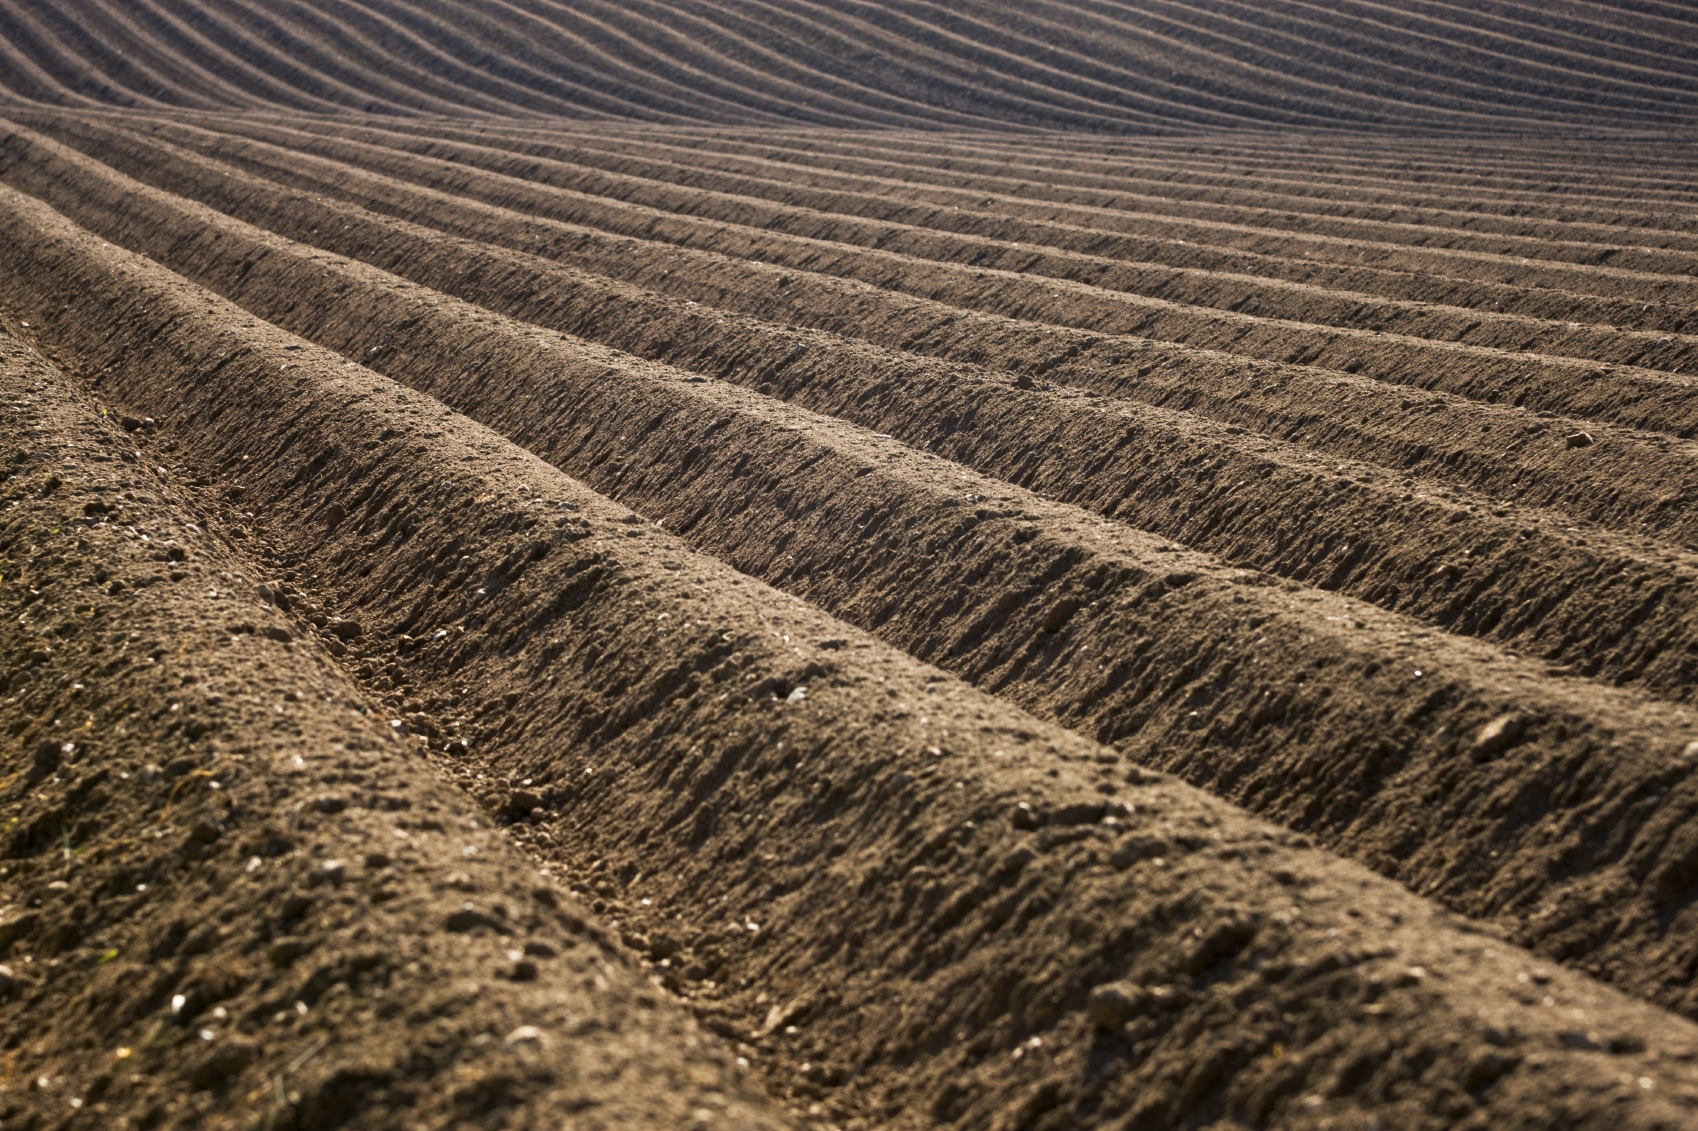 Evidence of increasing antibiotic resistance american for Natural resources soil information